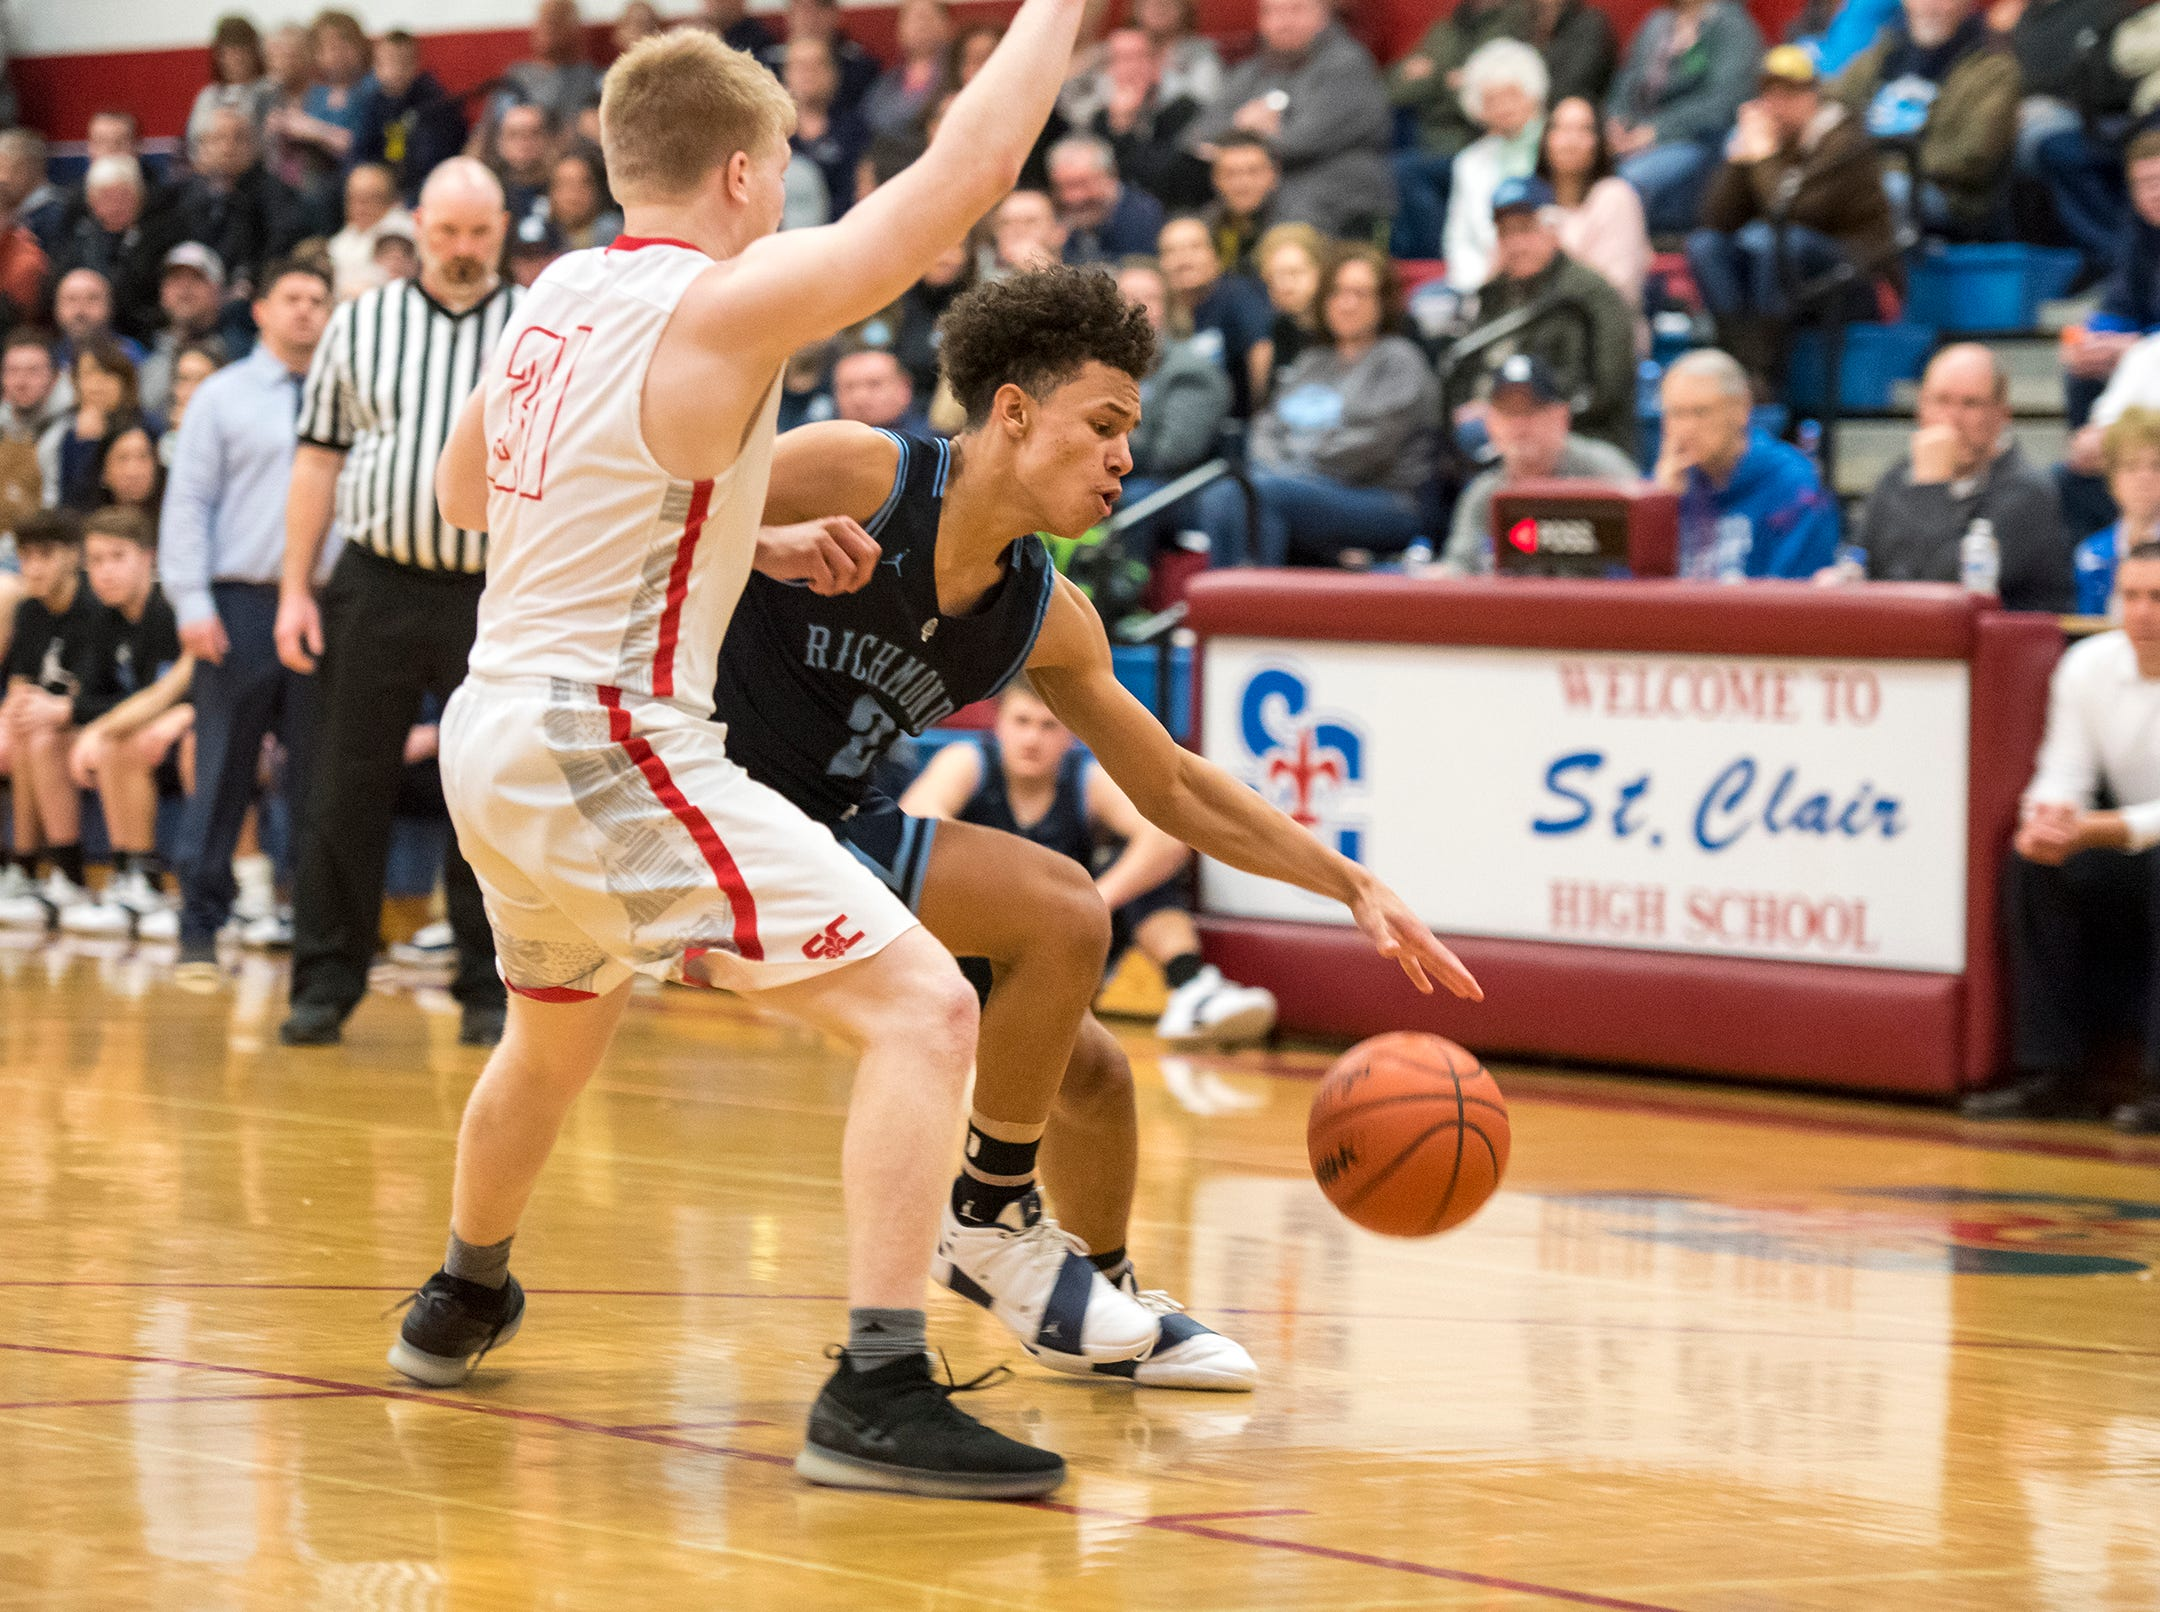 St. Clair's Sean Donaldson (31) guards against Richmond High School guard Drew Davis during the first round of the MHSAA district basketball tournament Monday, Feb. 25, 2019 at St. Clair High School.